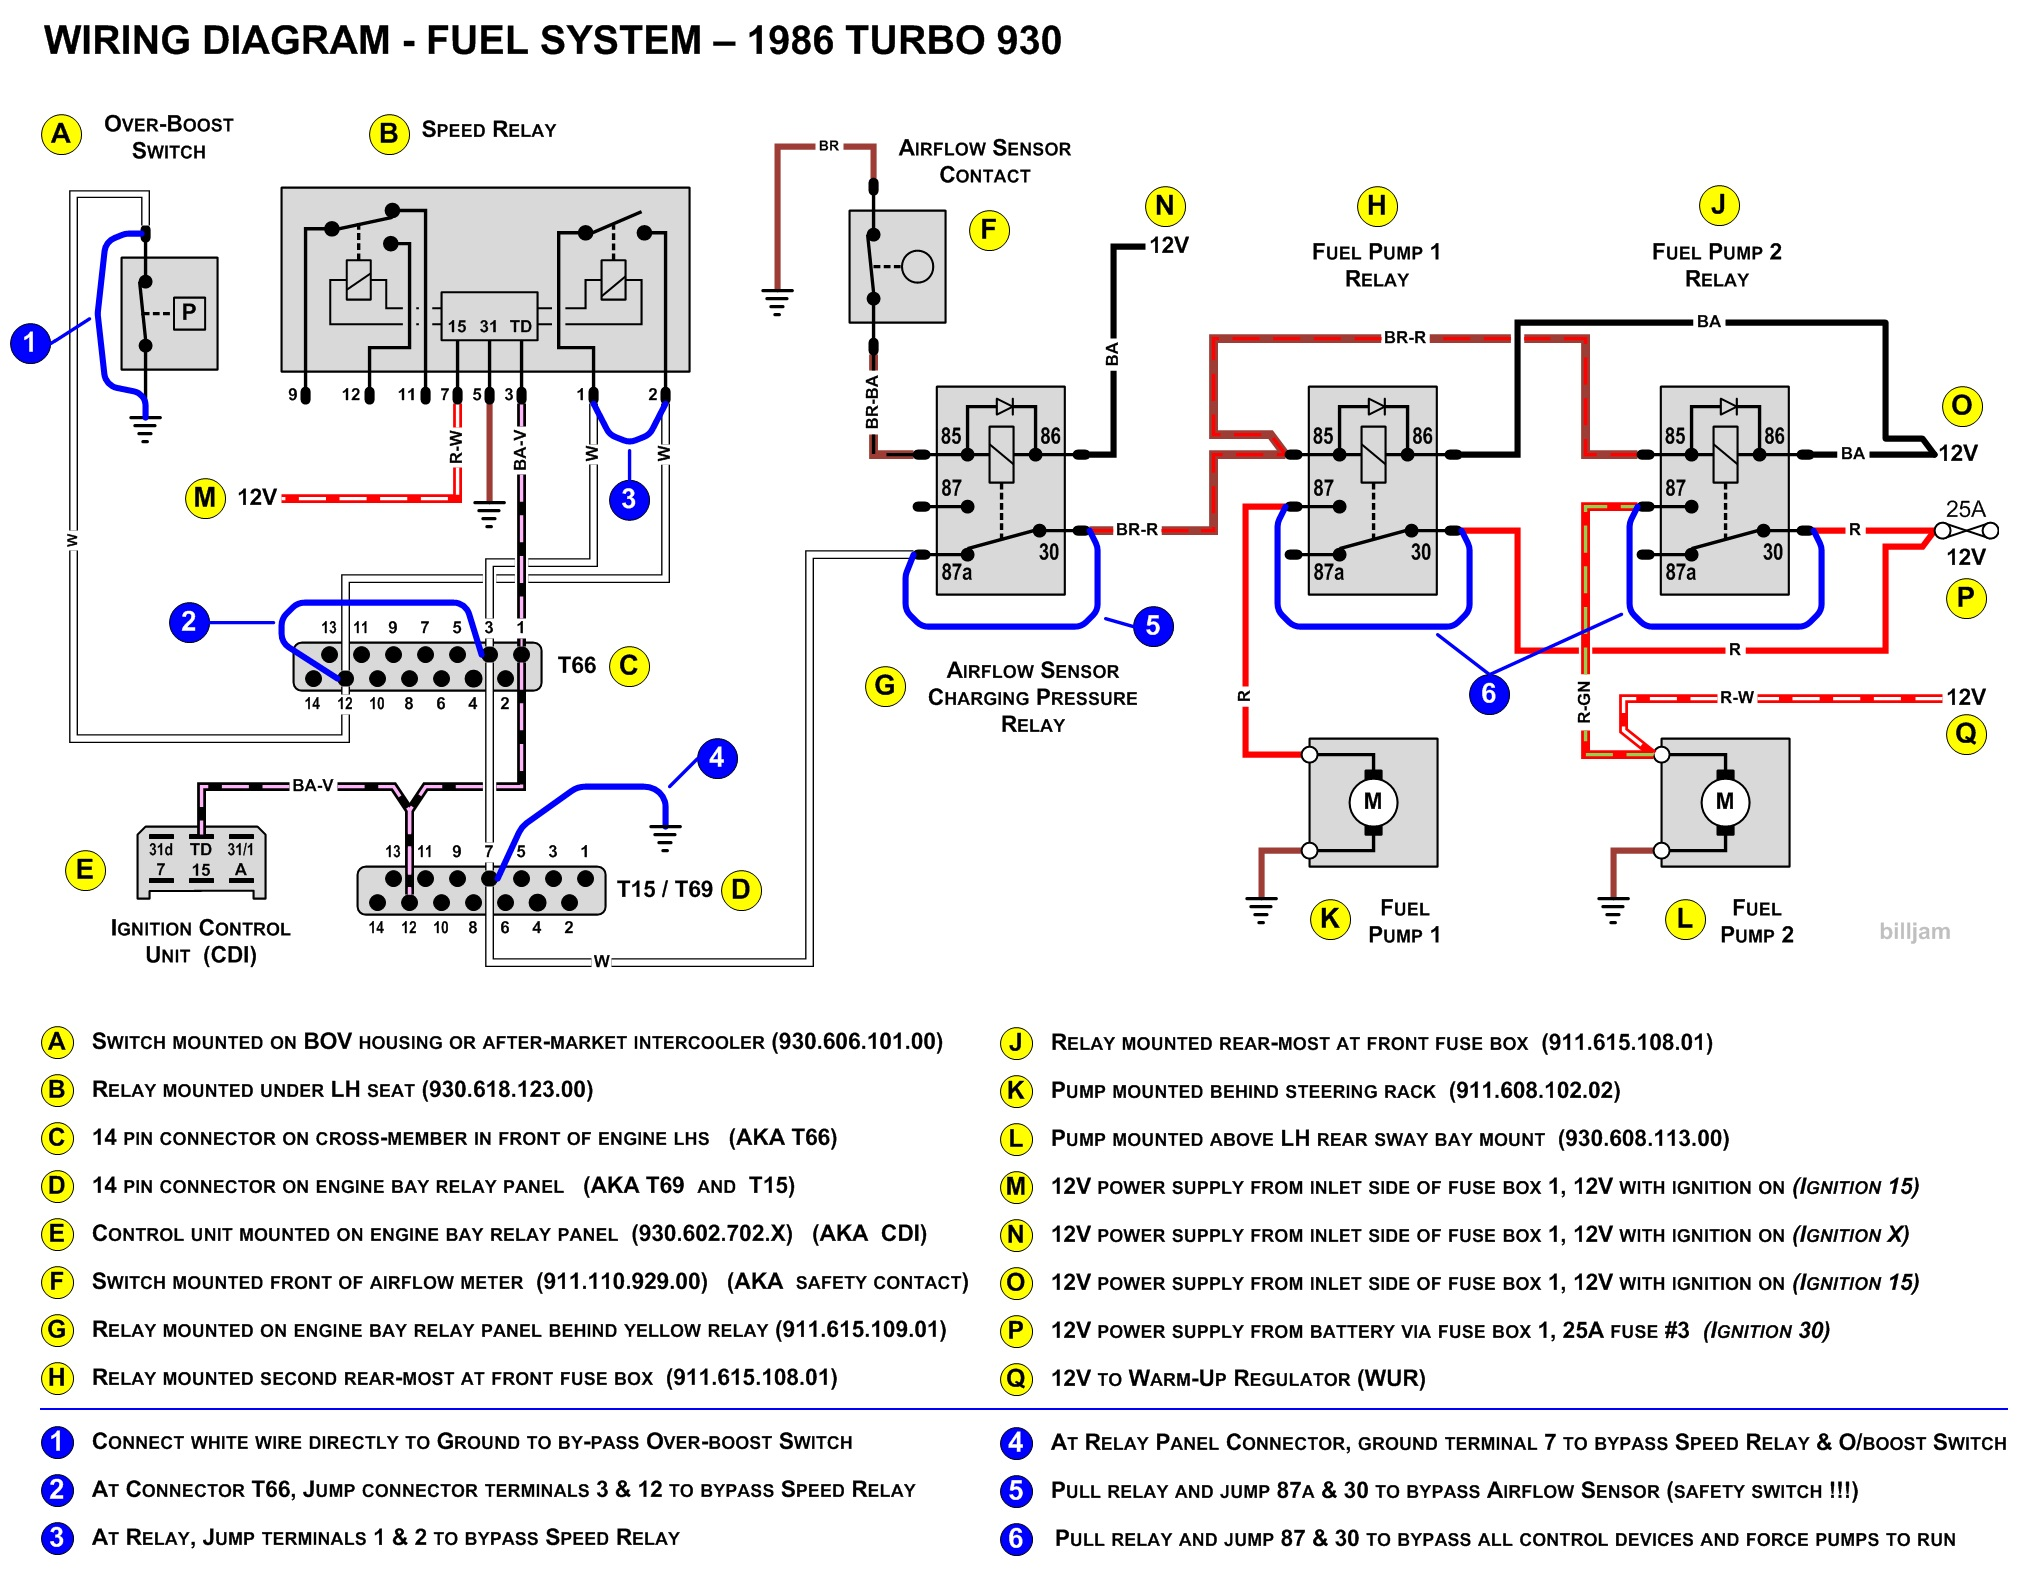 86 porsche 930 fuel system wiring diagram jumpers made a fuse box label for my 88 page 4 pelican parts technical bbs 1984 porsche 911 wiring diagram at gsmx.co